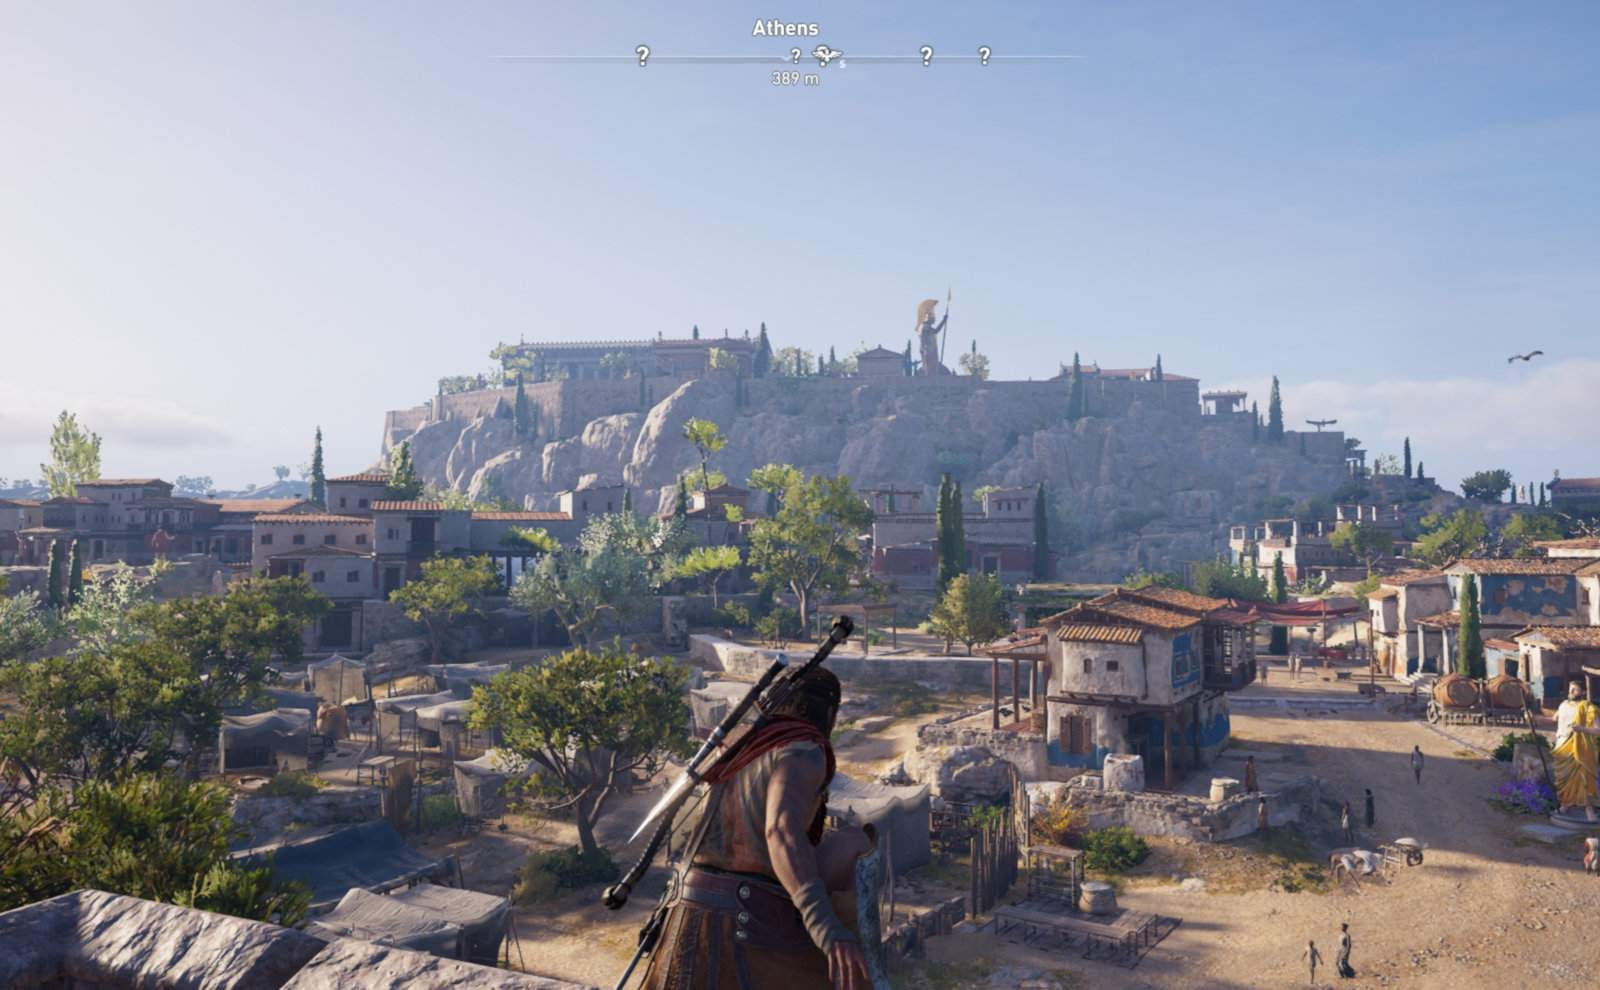 The best video games to inspire travel - marvel at the Acropolis in Athens when it was still complete while playing Assassin's Creed Odyssey.